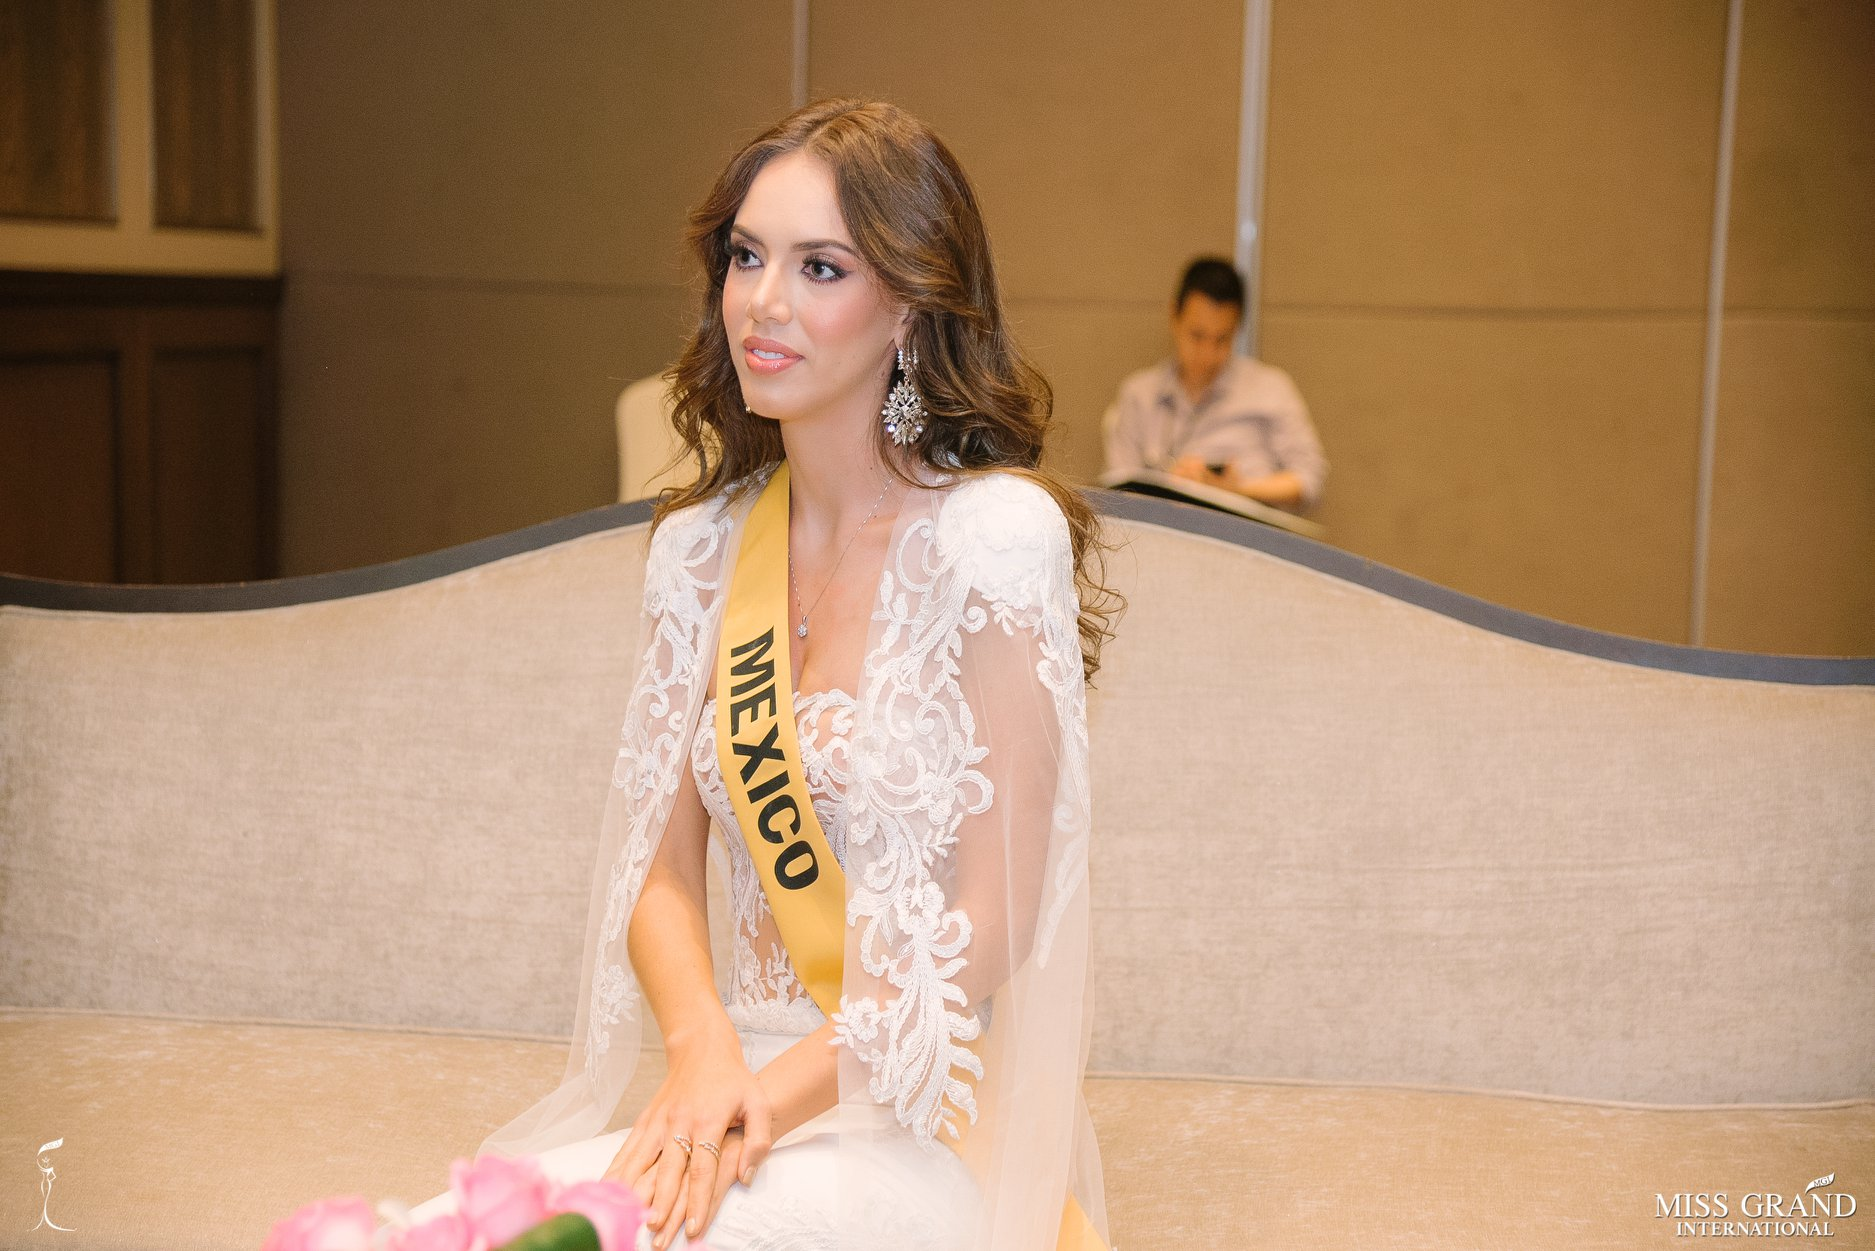 lezly diaz, top 10 de miss grand international 2018. - Página 10 Jiuw3610